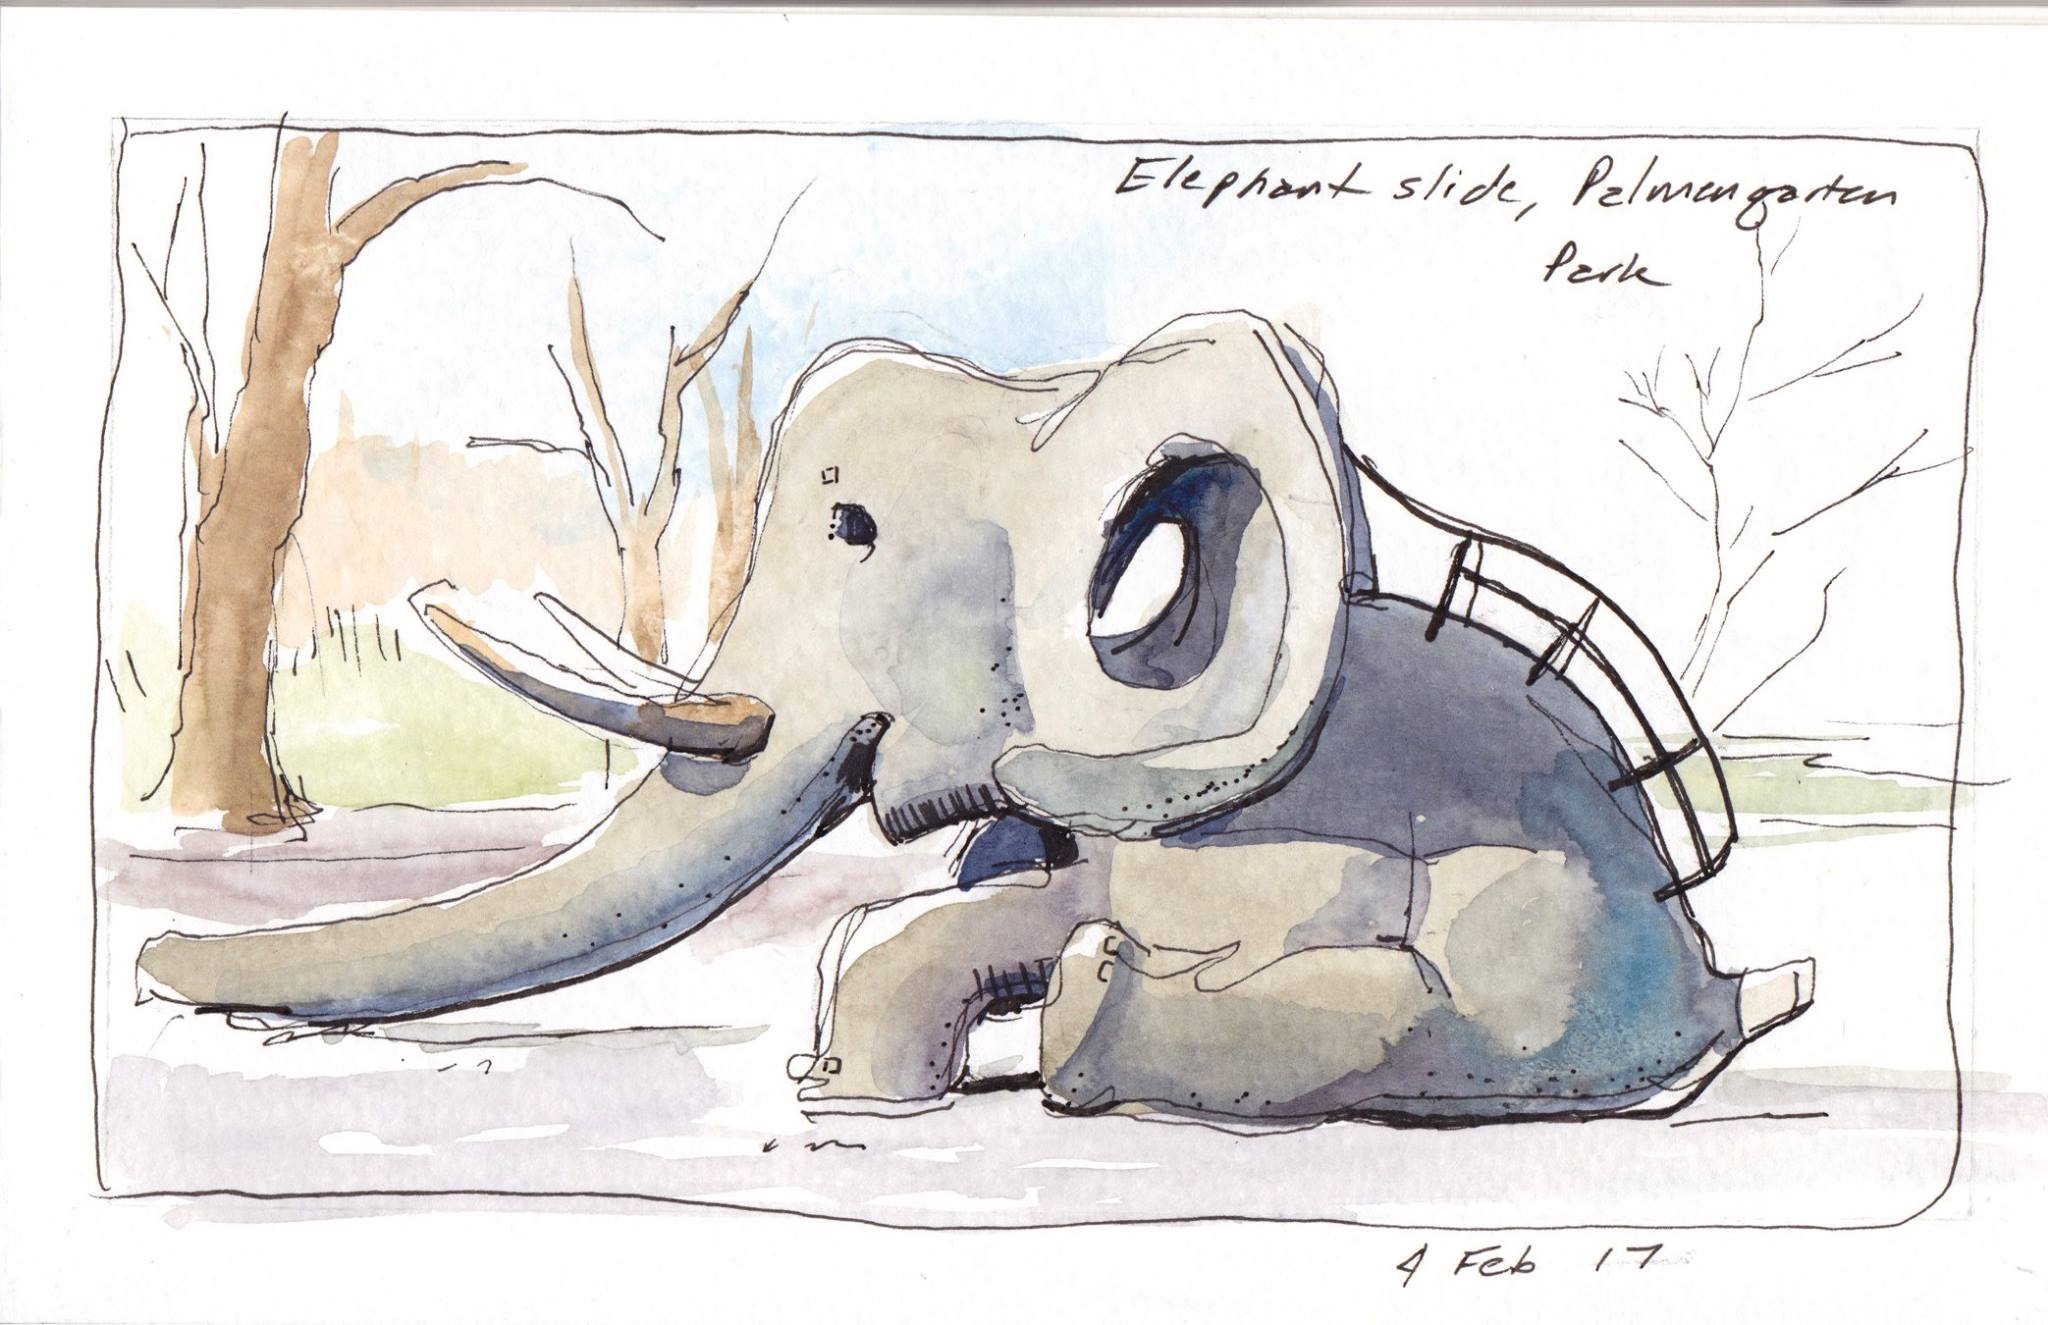 "This is the first drawing of the semester (Micron pen + watercolor on 5"" x 8"" sketchbook). It's a quirky elephant slide at a playground in Palmengarten Park. You basically climb up the elephant's back, go through a hole in his head, and slide down a slick metal trough in his trunk. This drawing was done during a play break for Gabriel. It was really cold, so I had to work quickly."